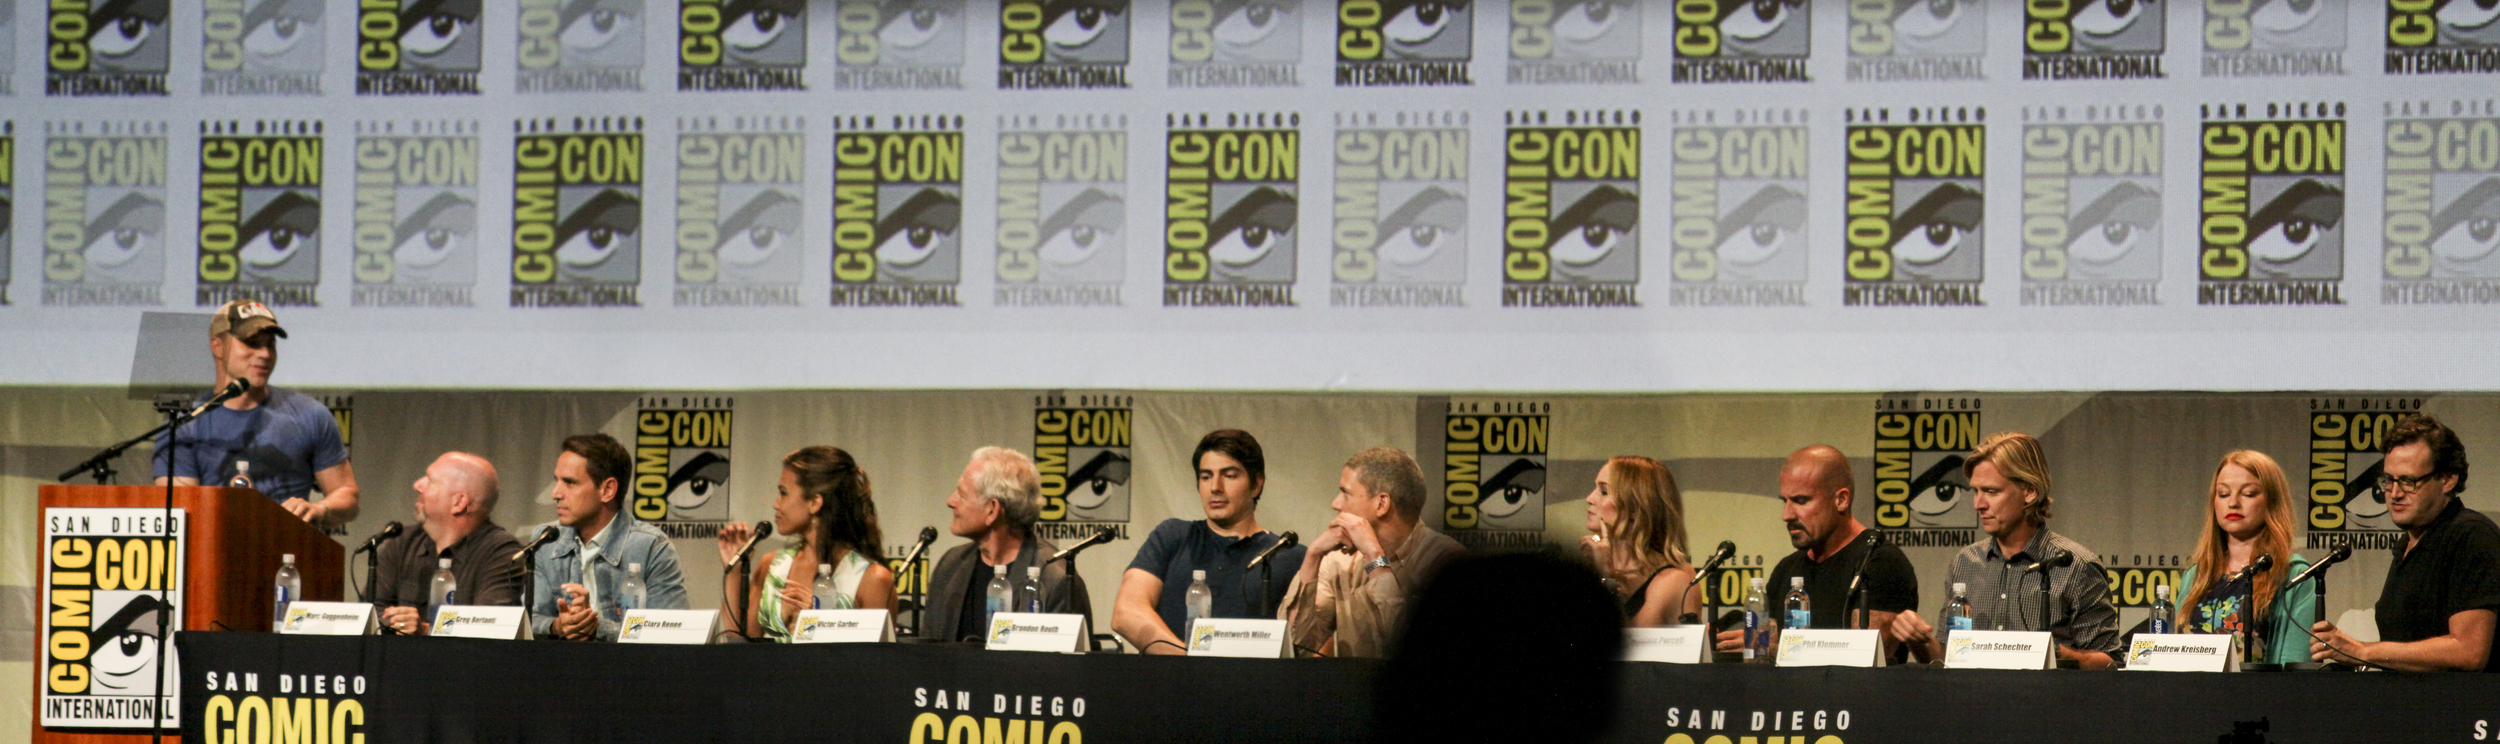 Legends of Tomorrow Panel - 1.jpg